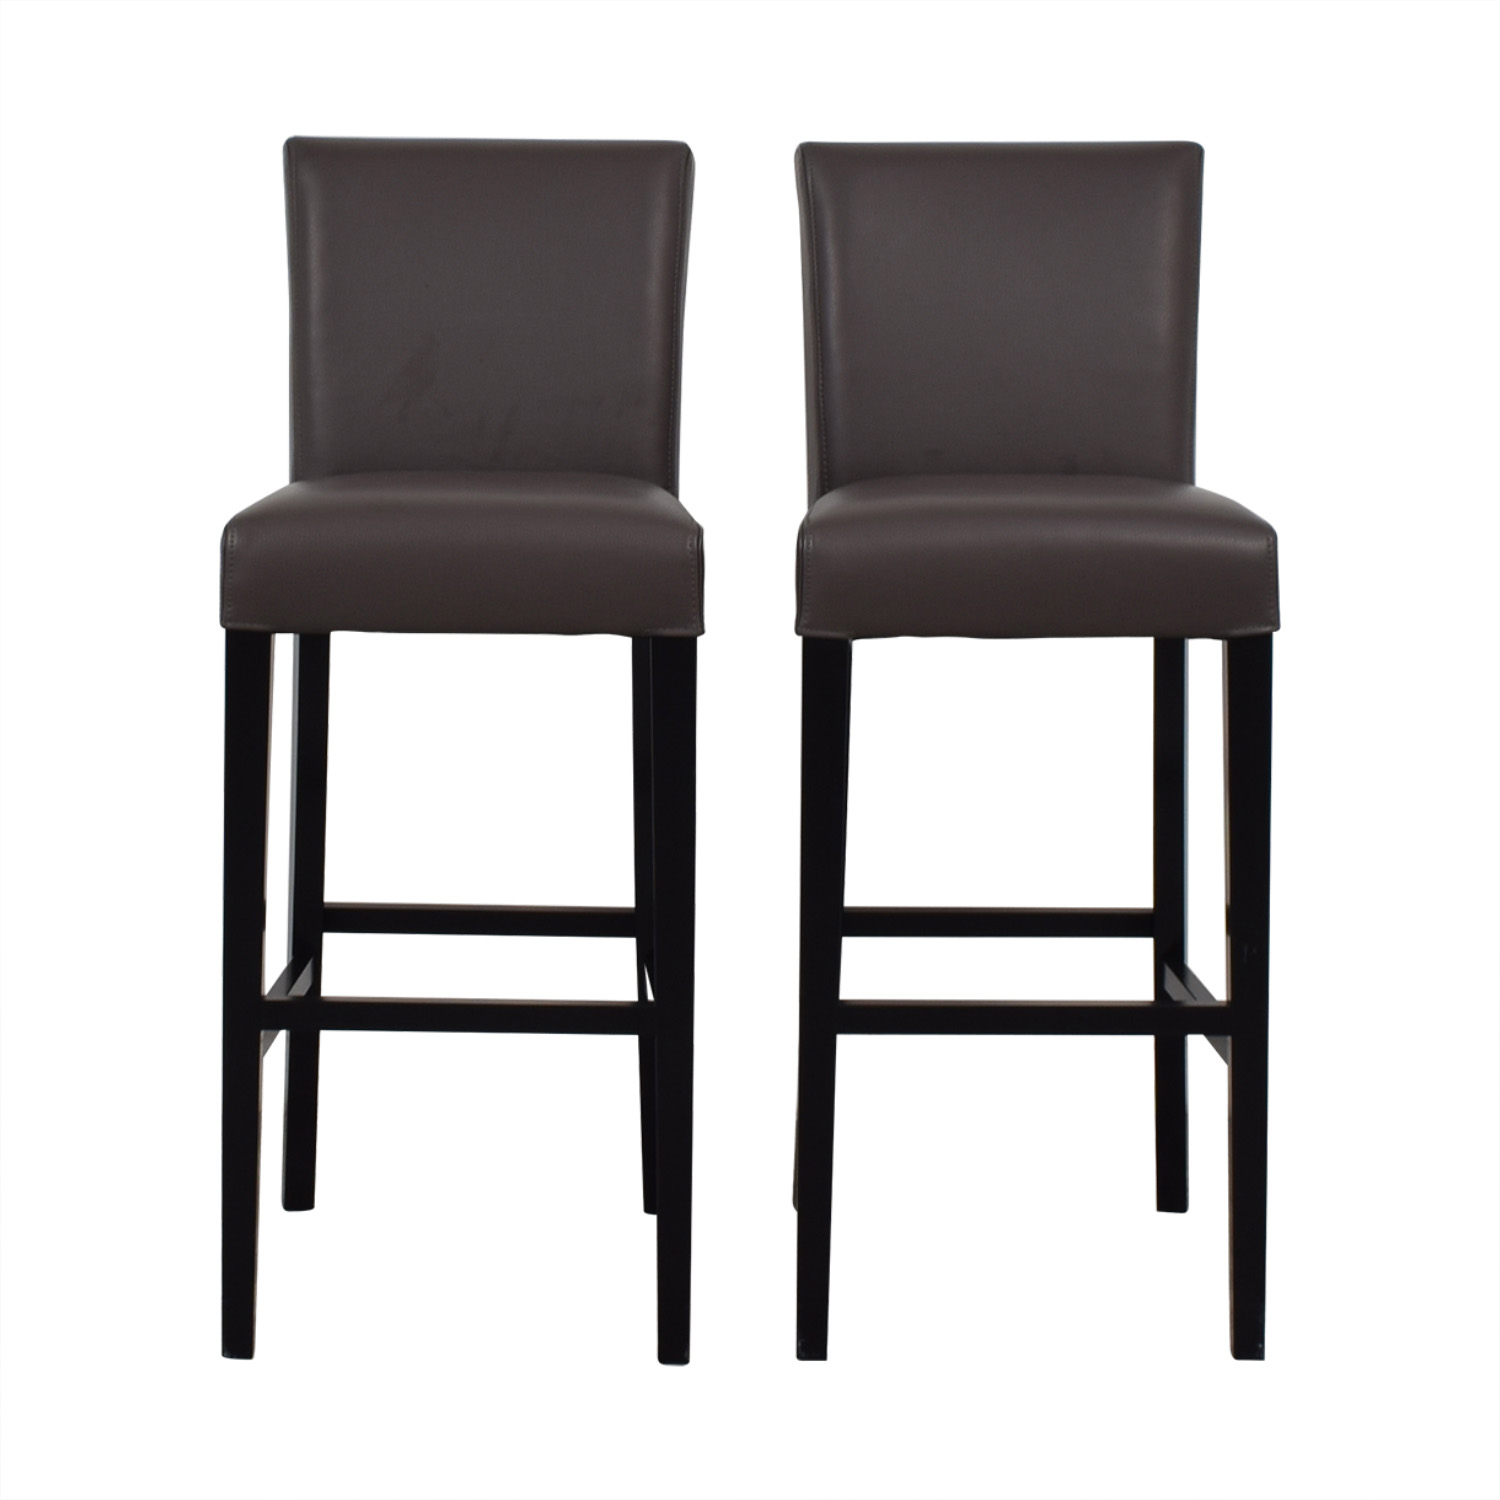 Crate & Barrel Lowe Smoke Leather Bar Stools / Stools